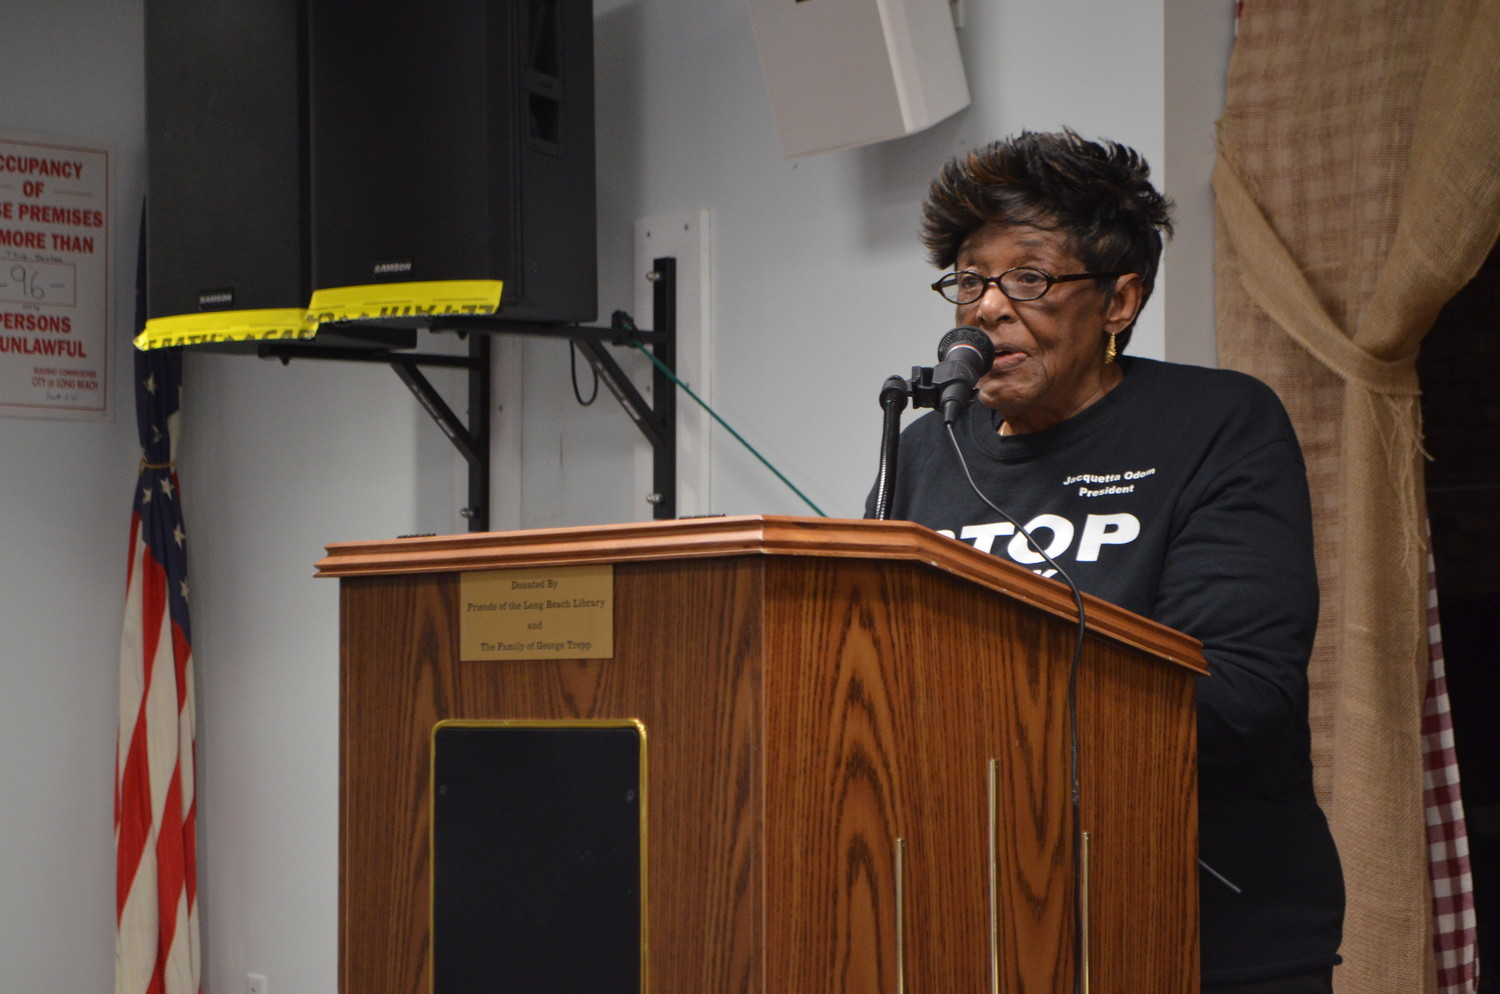 Jacquetta Odom, president of the Concerned Citizens of North Park, recited a poem by John Hall.